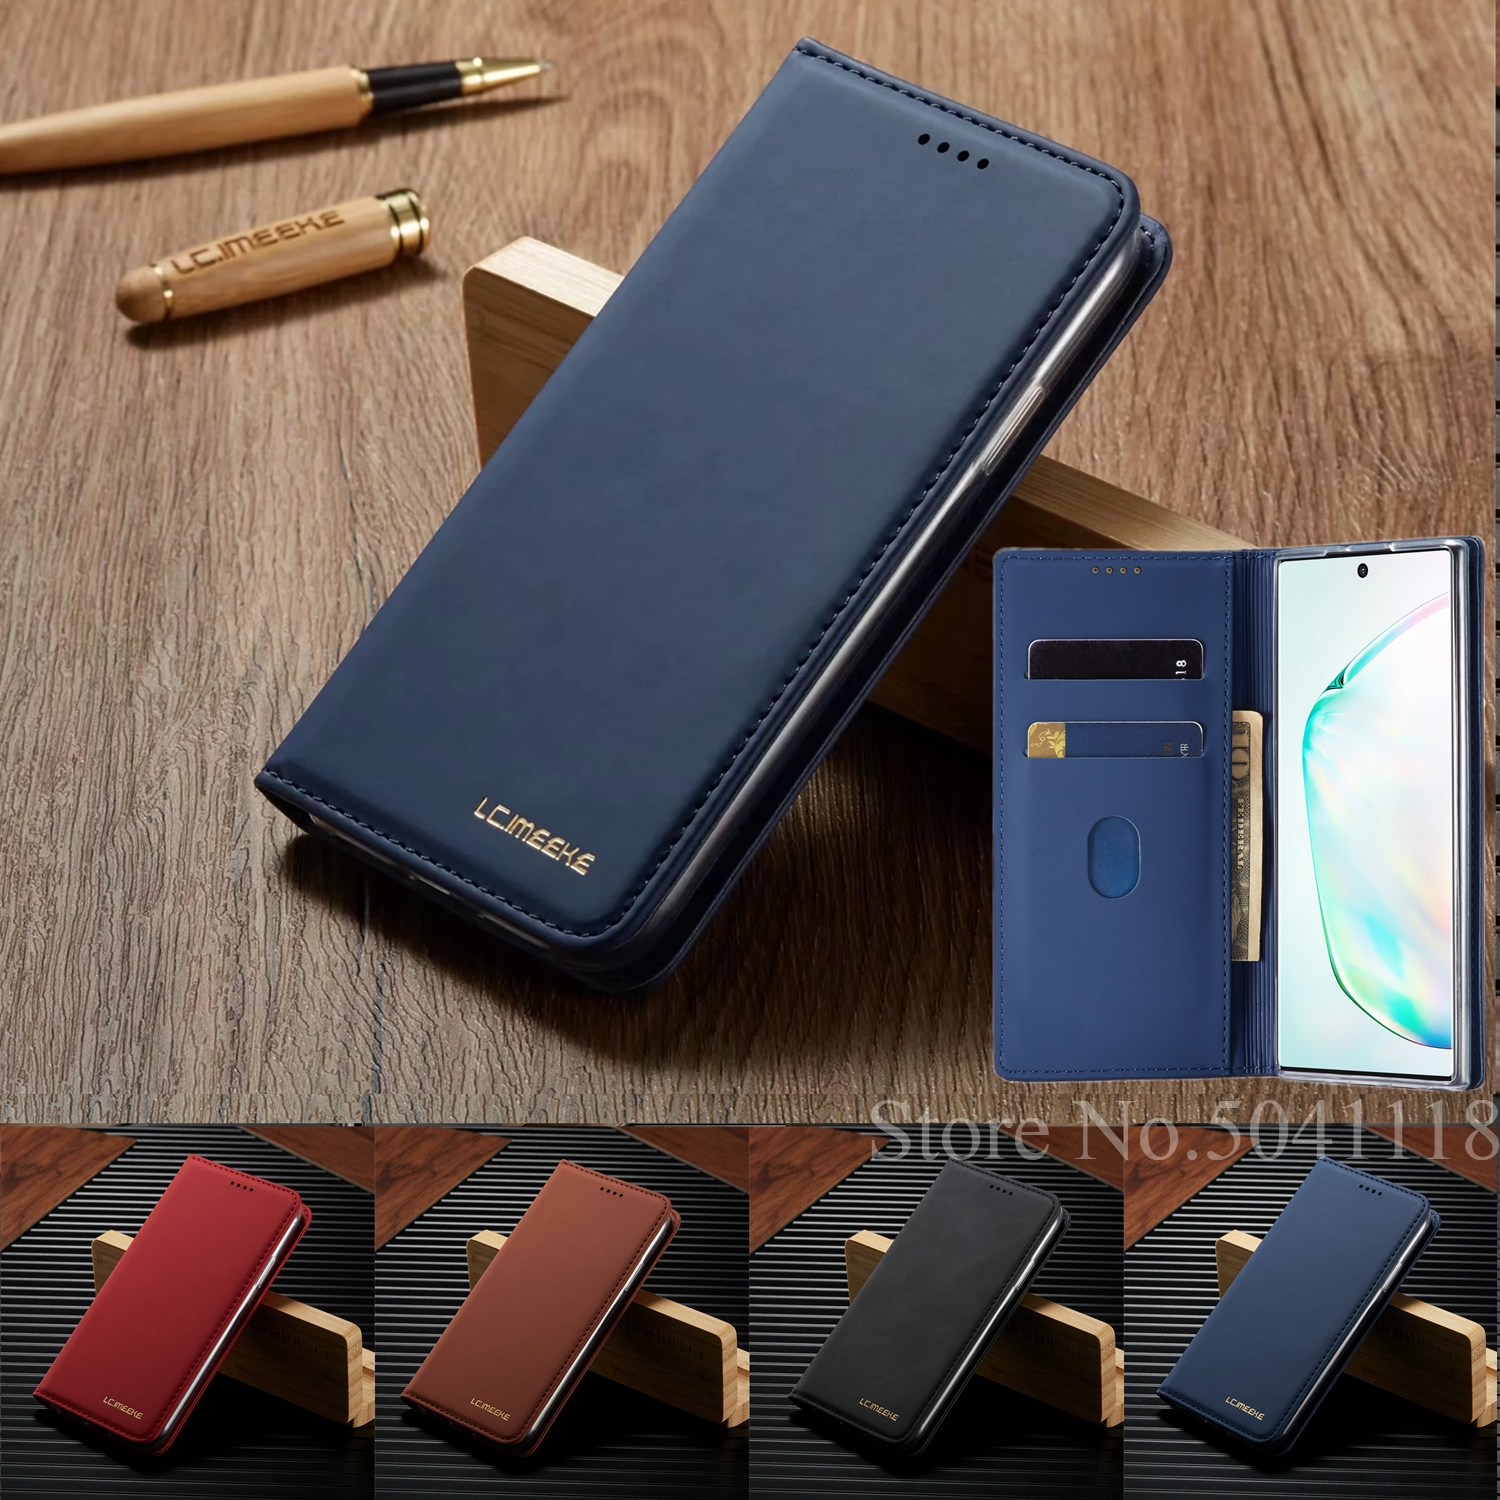 <font><b>Leather</b></font> <font><b>Flip</b></font> <font><b>Wallet</b></font> <font><b>Case</b></font> For <font><b>Samsung</b></font> Galaxy Note 10 9 S8 S9 S10 Plus E A10 A20 A30 A40 A50 A70 Cover Card <font><b>Stand</b></font> Phone Coque Etui image